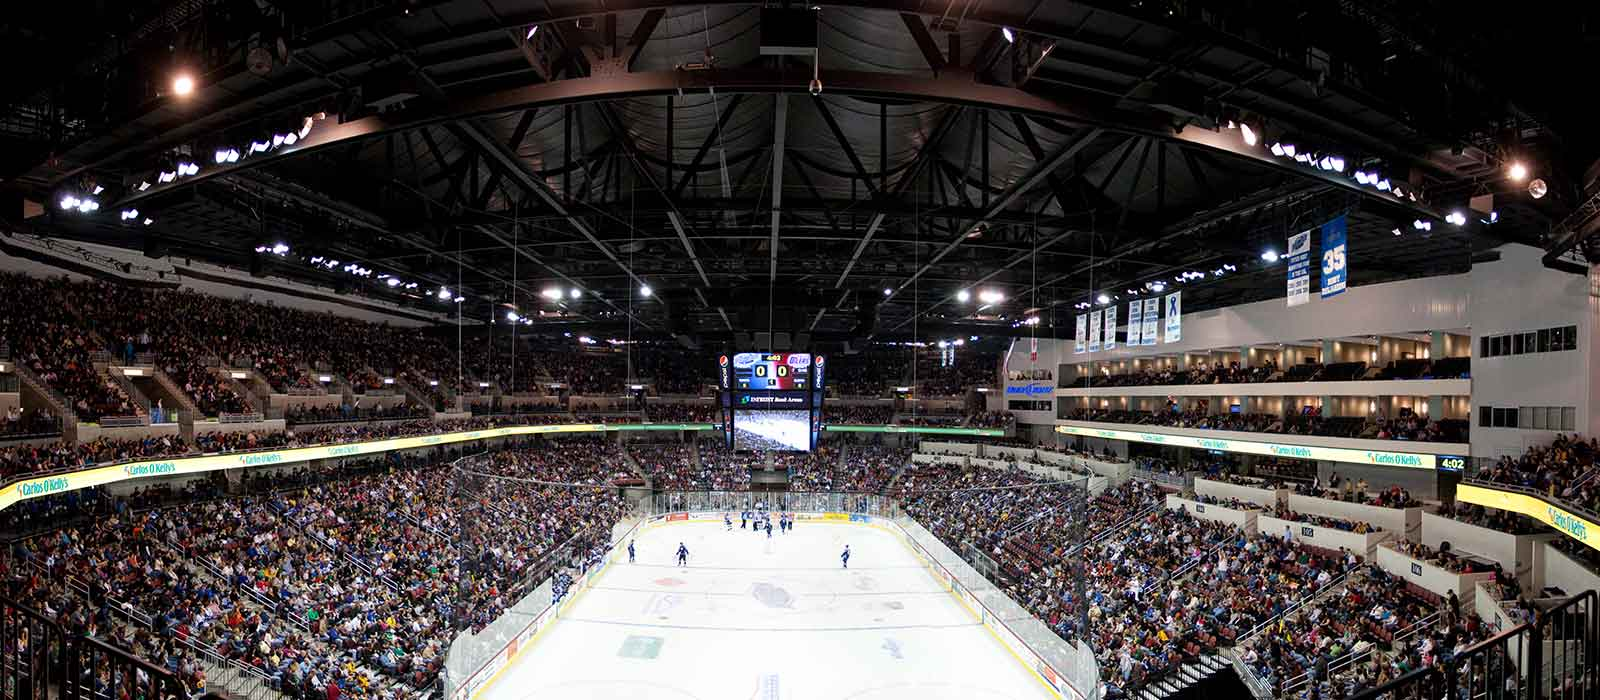 Wdm Architects Intrust Bank Arena